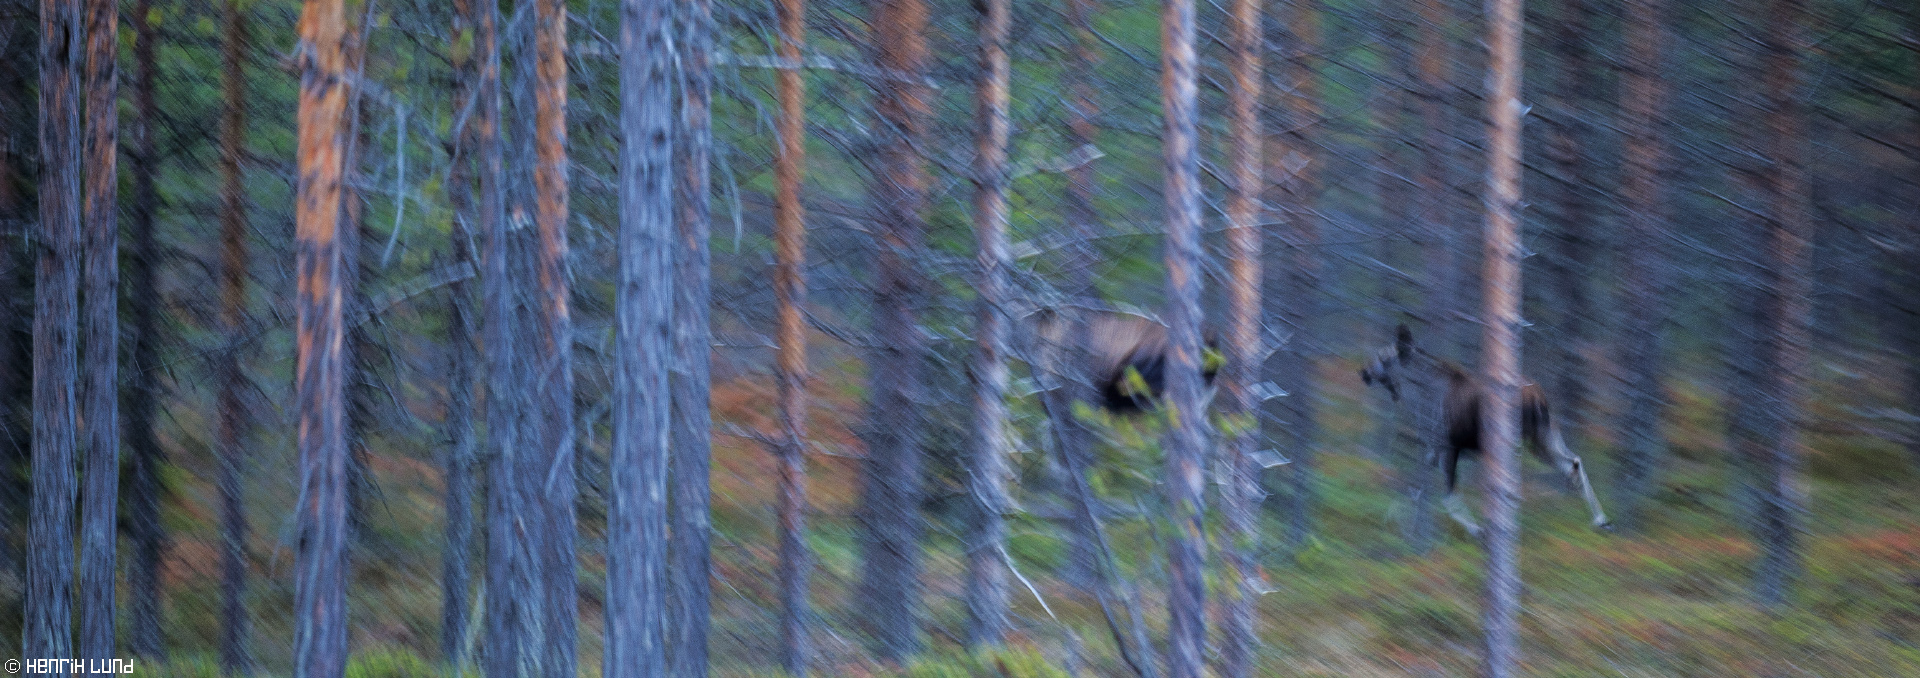 Two mooses running into the forest close to Vindeln in Västerbotten, Sweden. October 2015.